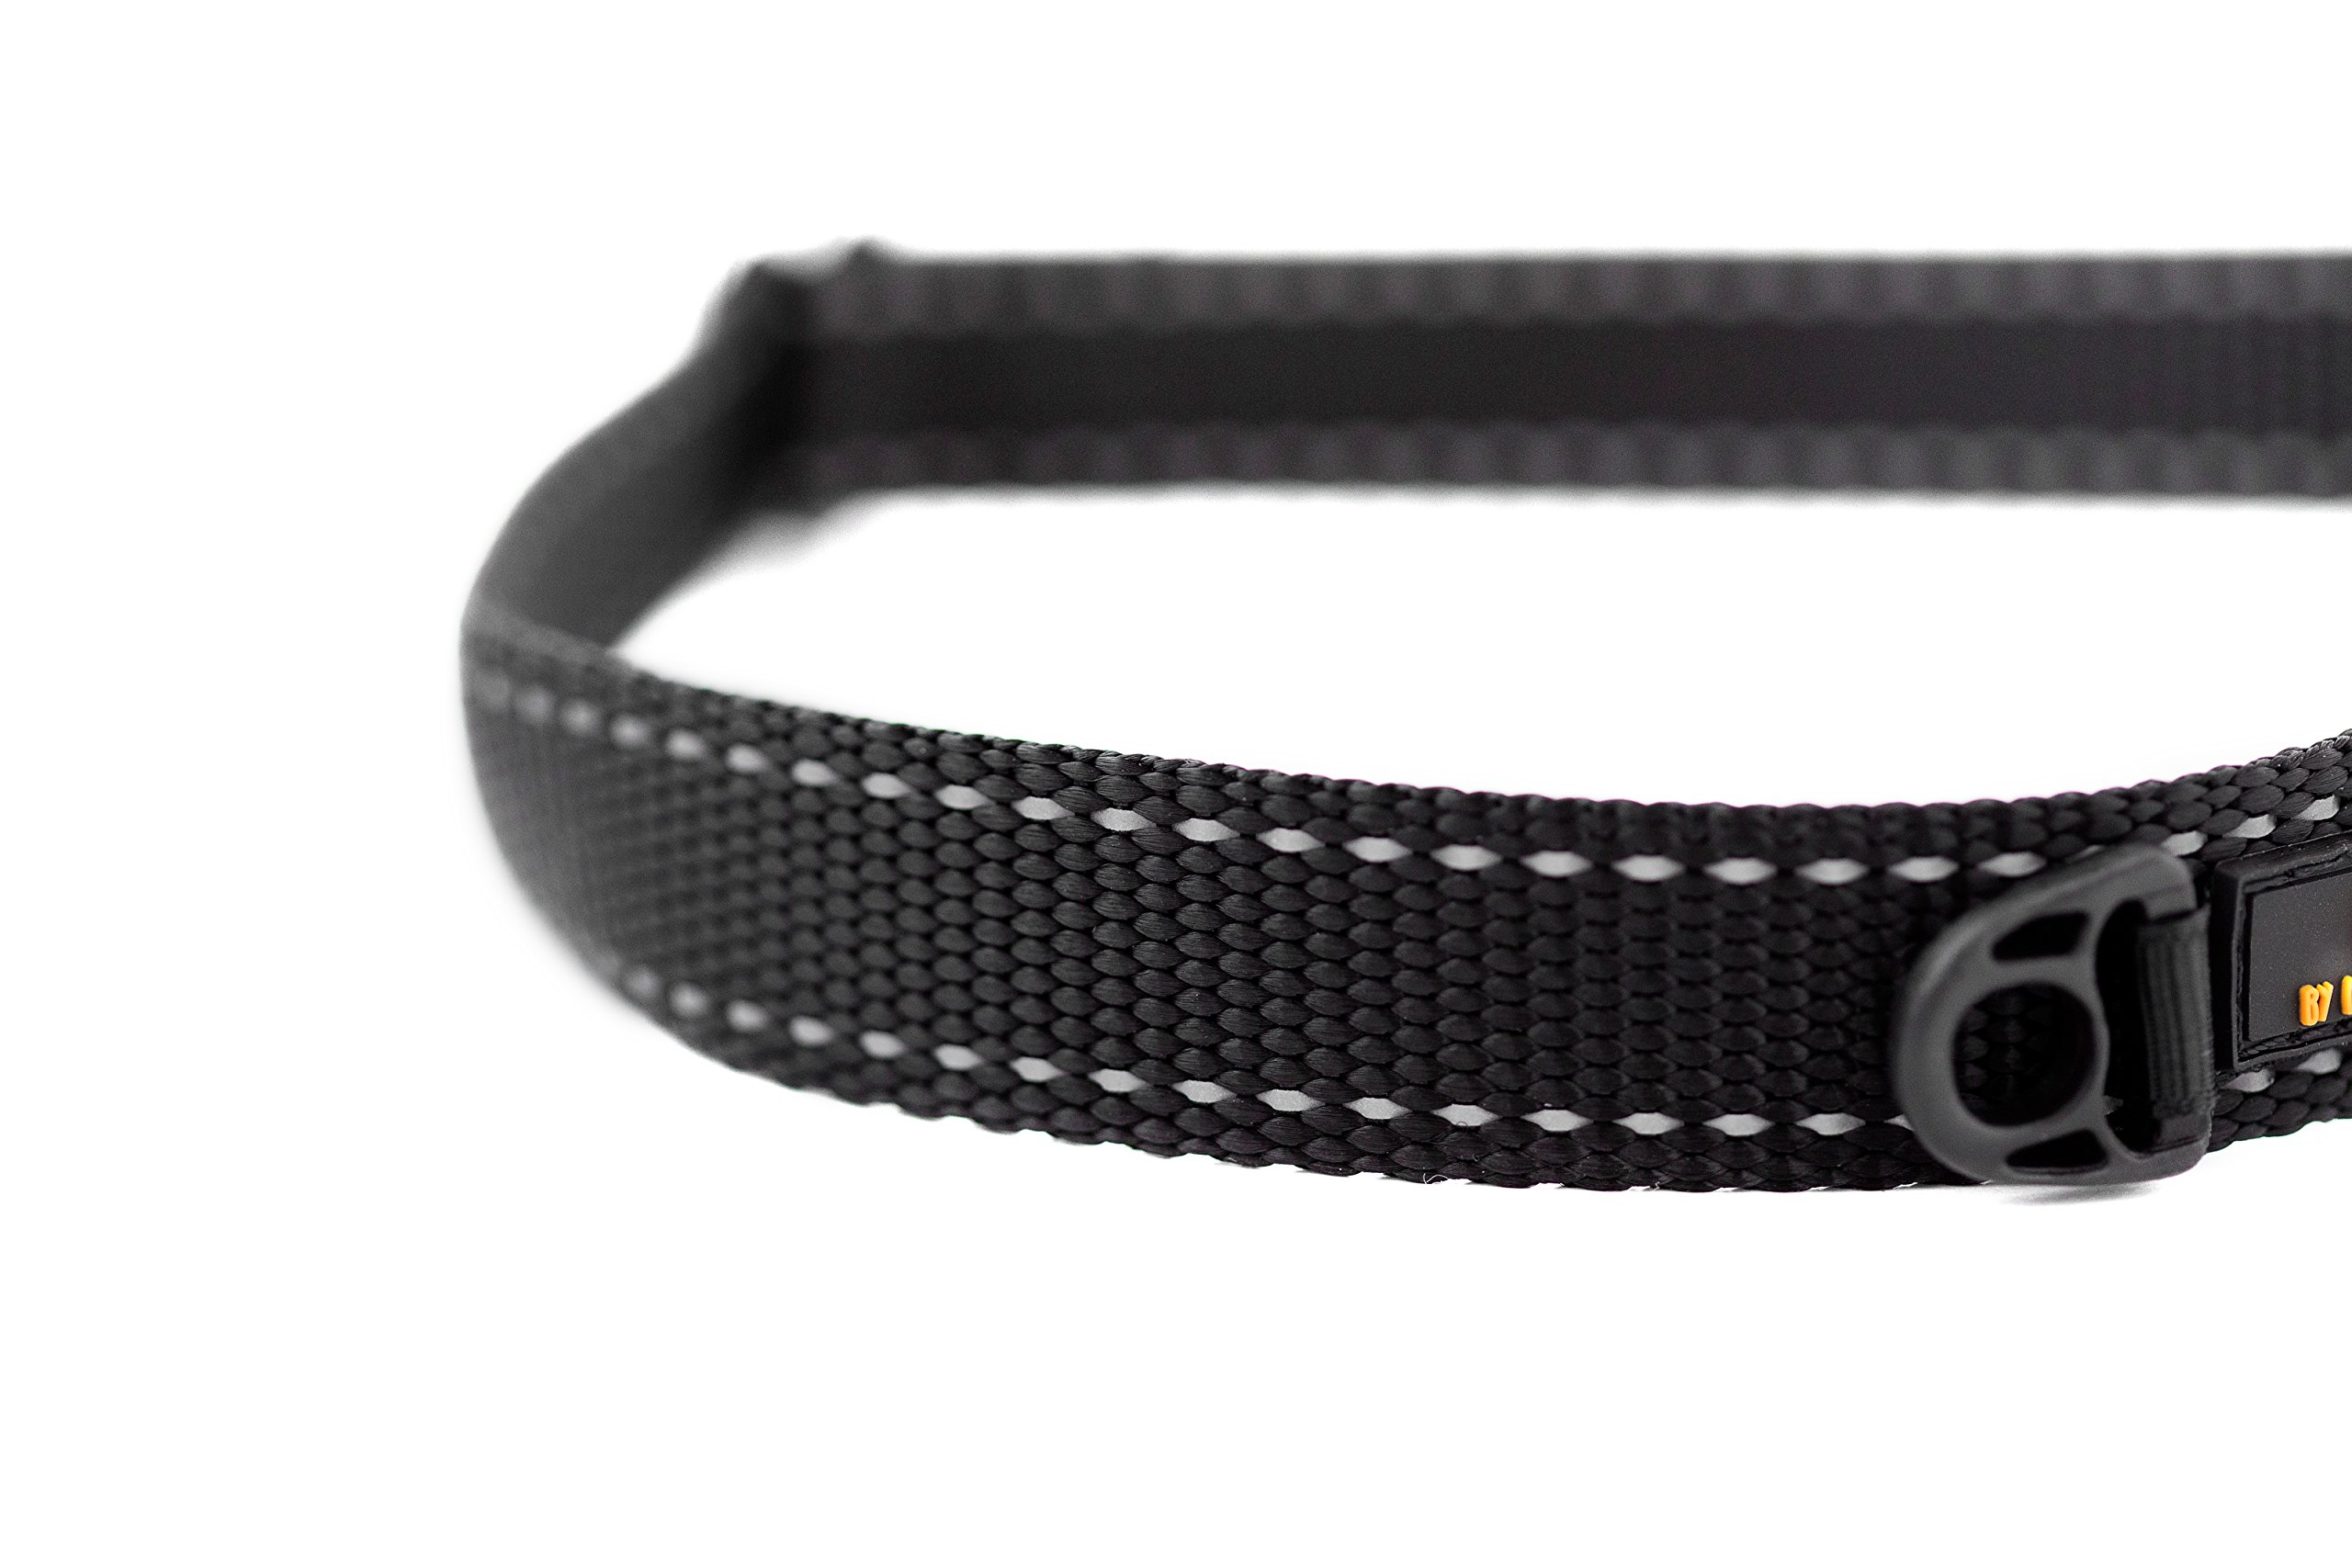 Mighty Paw Metal Buckle Dog Collar, All Metal Hardware, Lightweight Collar, Reflective Stitching, Strong, Durable (Medium, Black) by Mighty Paw (Image #2)